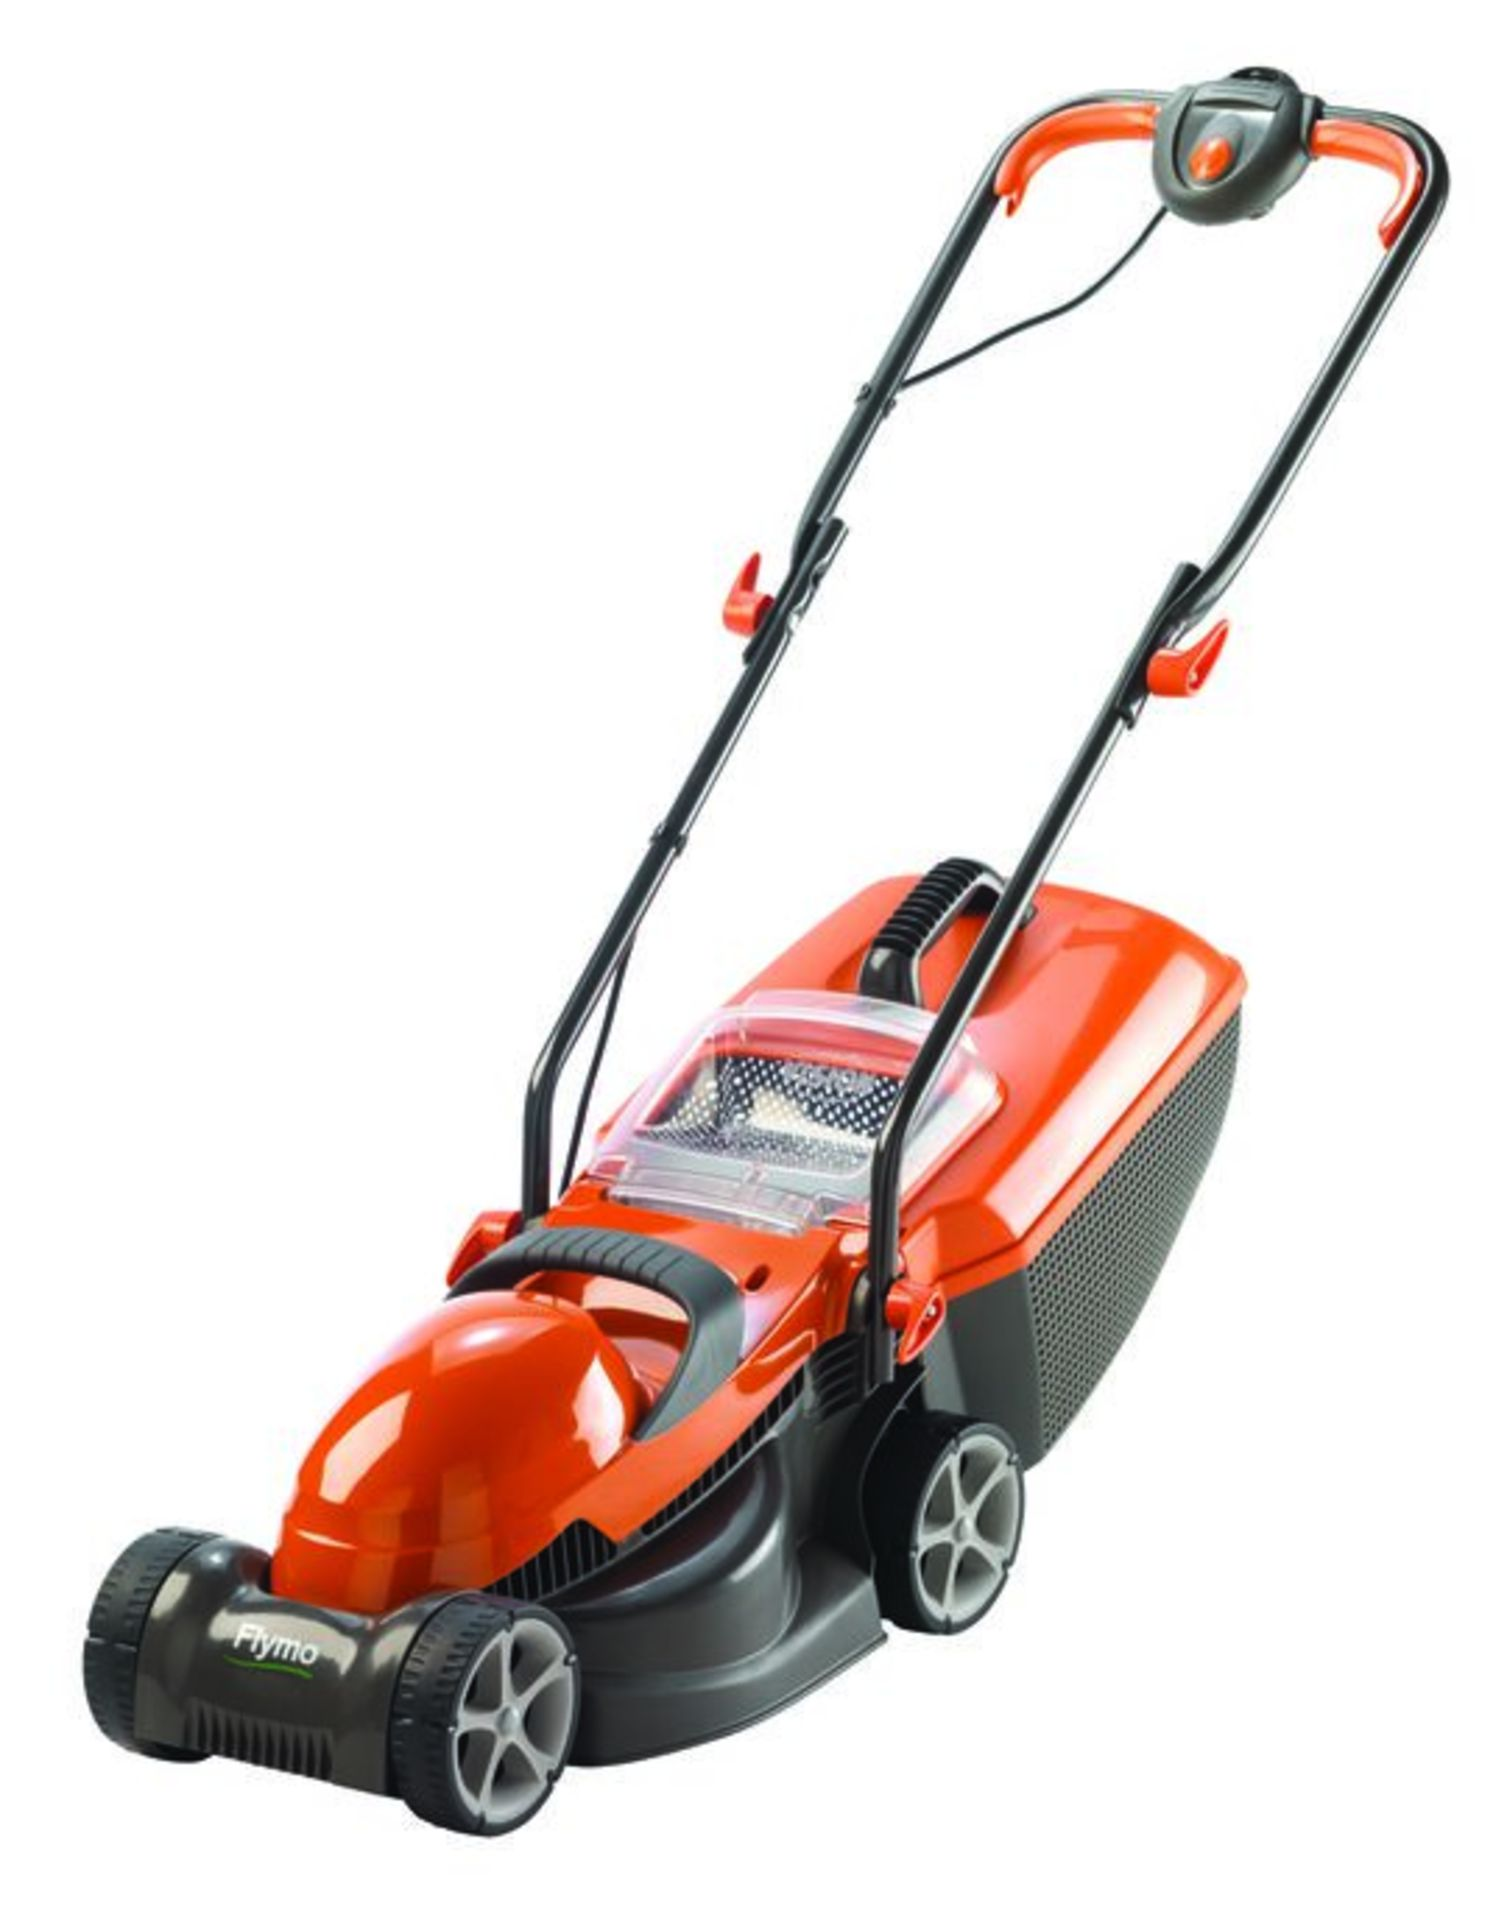 (P3) 1x Flymo Chevron 32V Lawn Mower. Contents Appear As New, Clean & Unused.